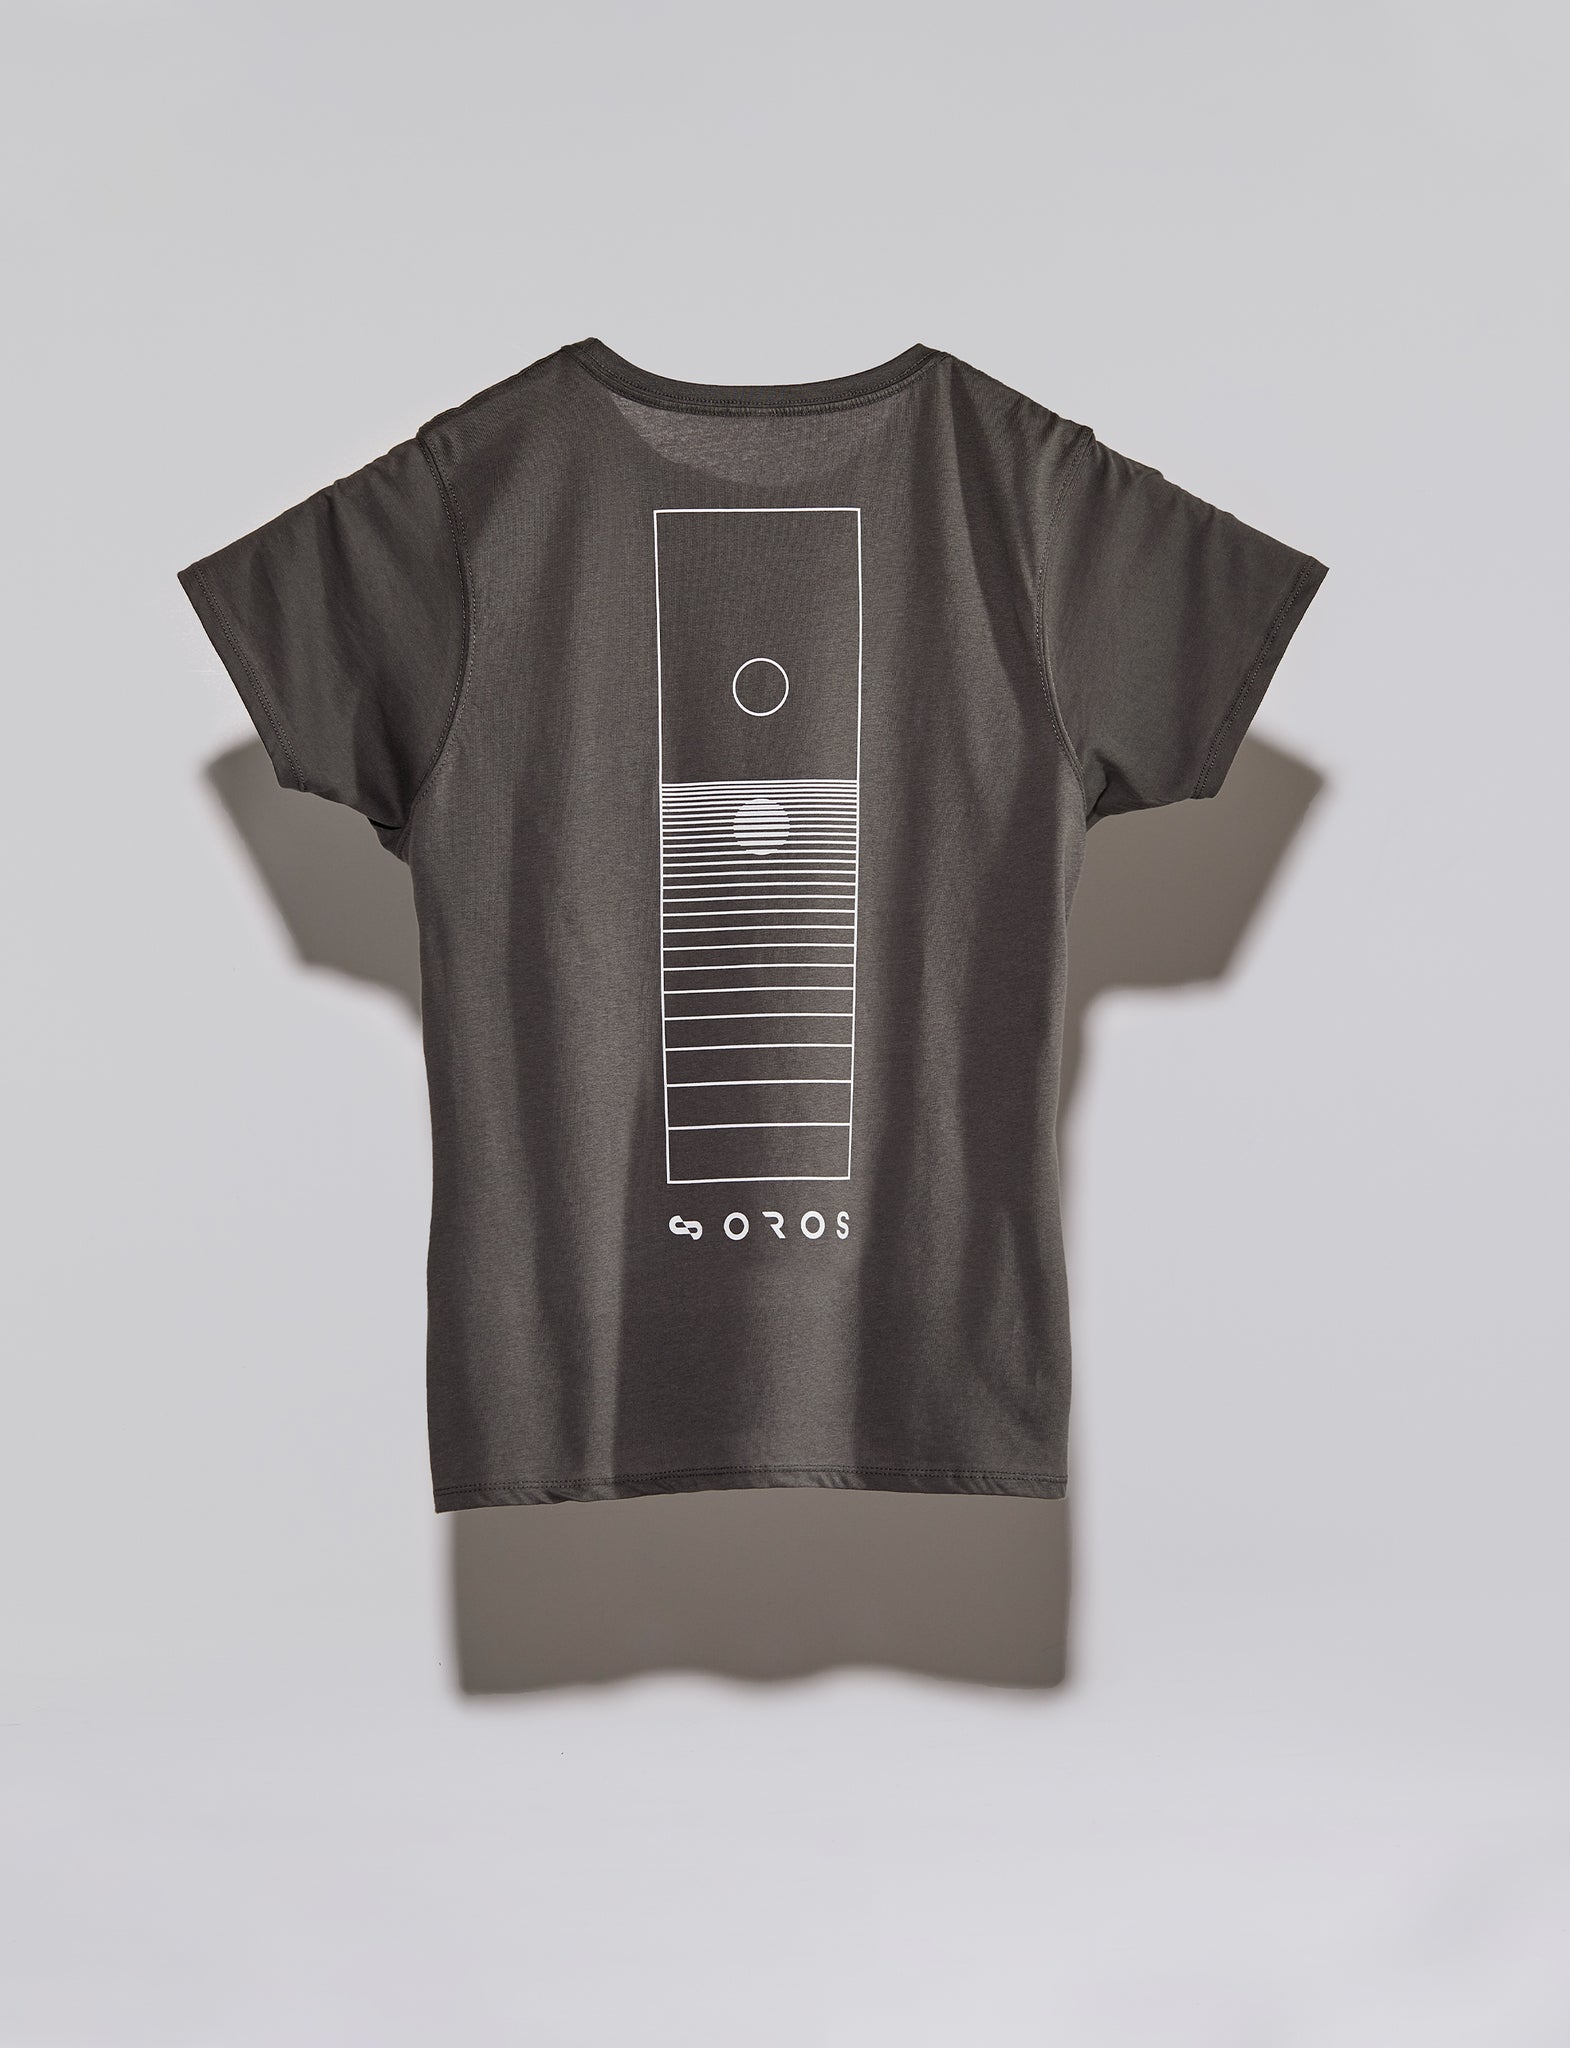 Women's Horizon t-shirt, color:Charcoal